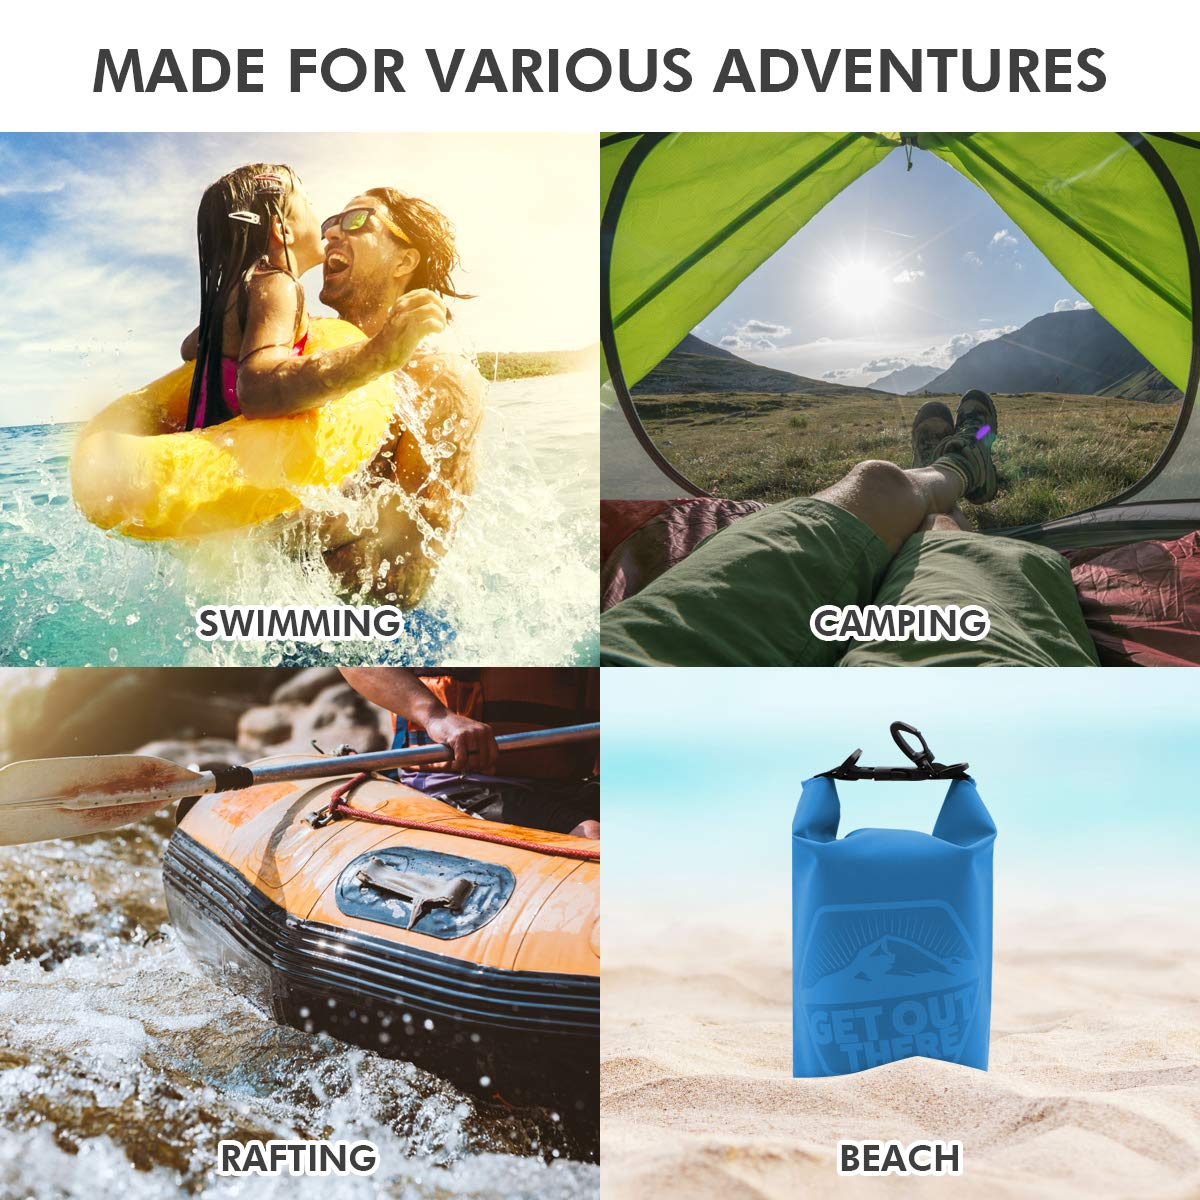 Perfect for Kayaking Boating Canoeing Fishing Rafting Swimming Camping Snowboarding Sack with Long Adjustable Shoulder Strap Included ROCONTRIP Premium Waterproof Bag